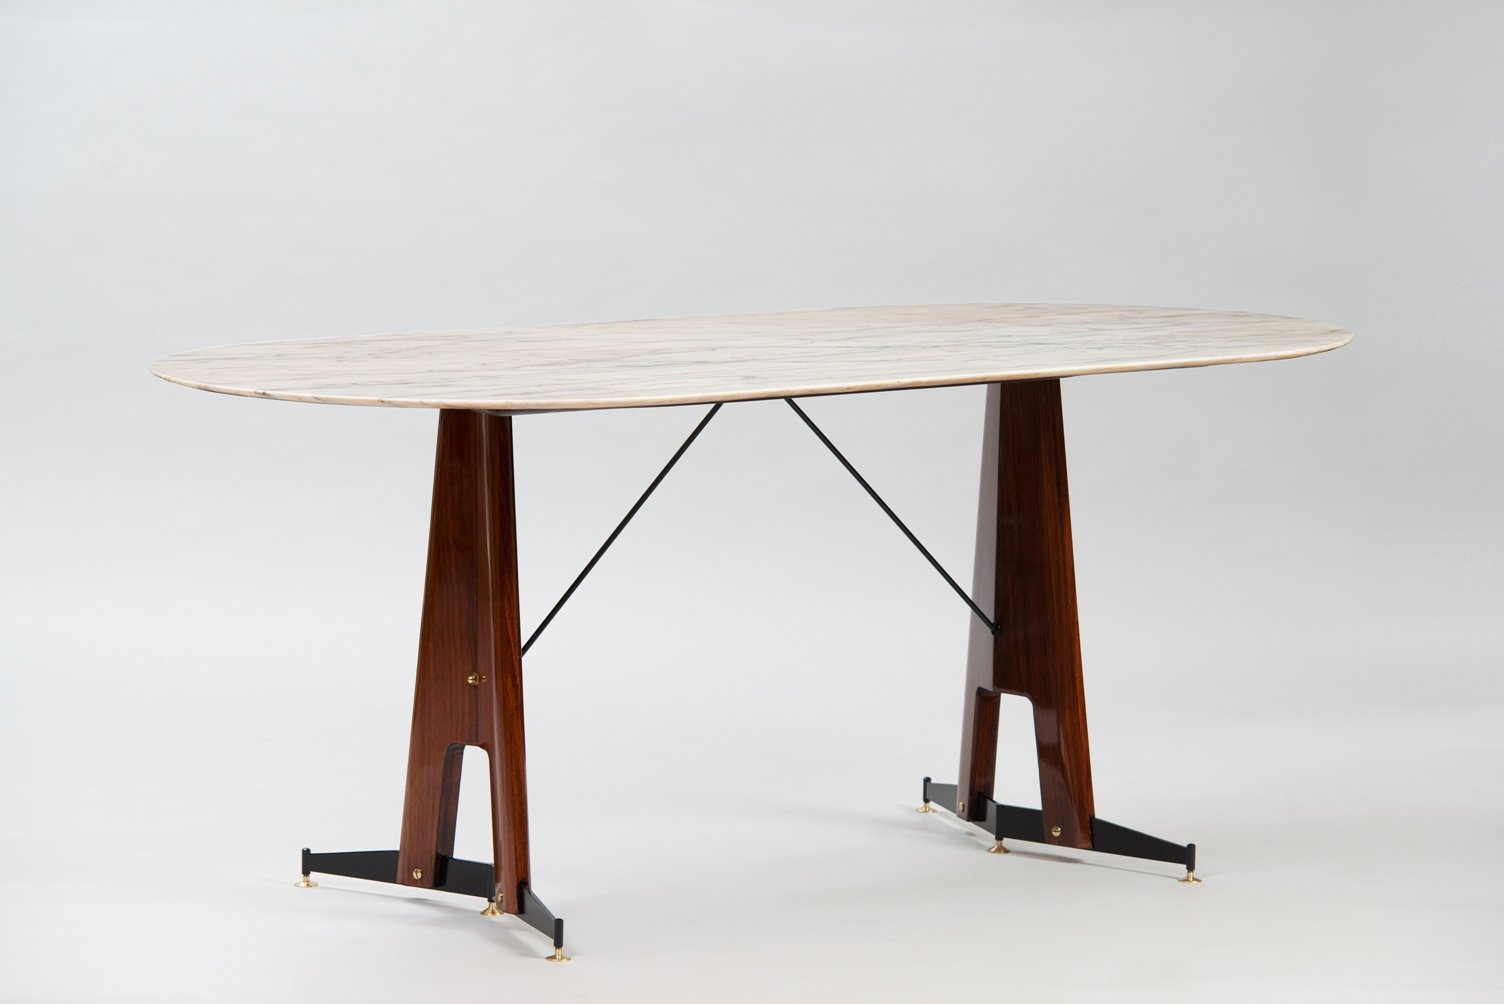 Best table salle a manger marbre design ideas lalawgroup - Table salle a manger but ...